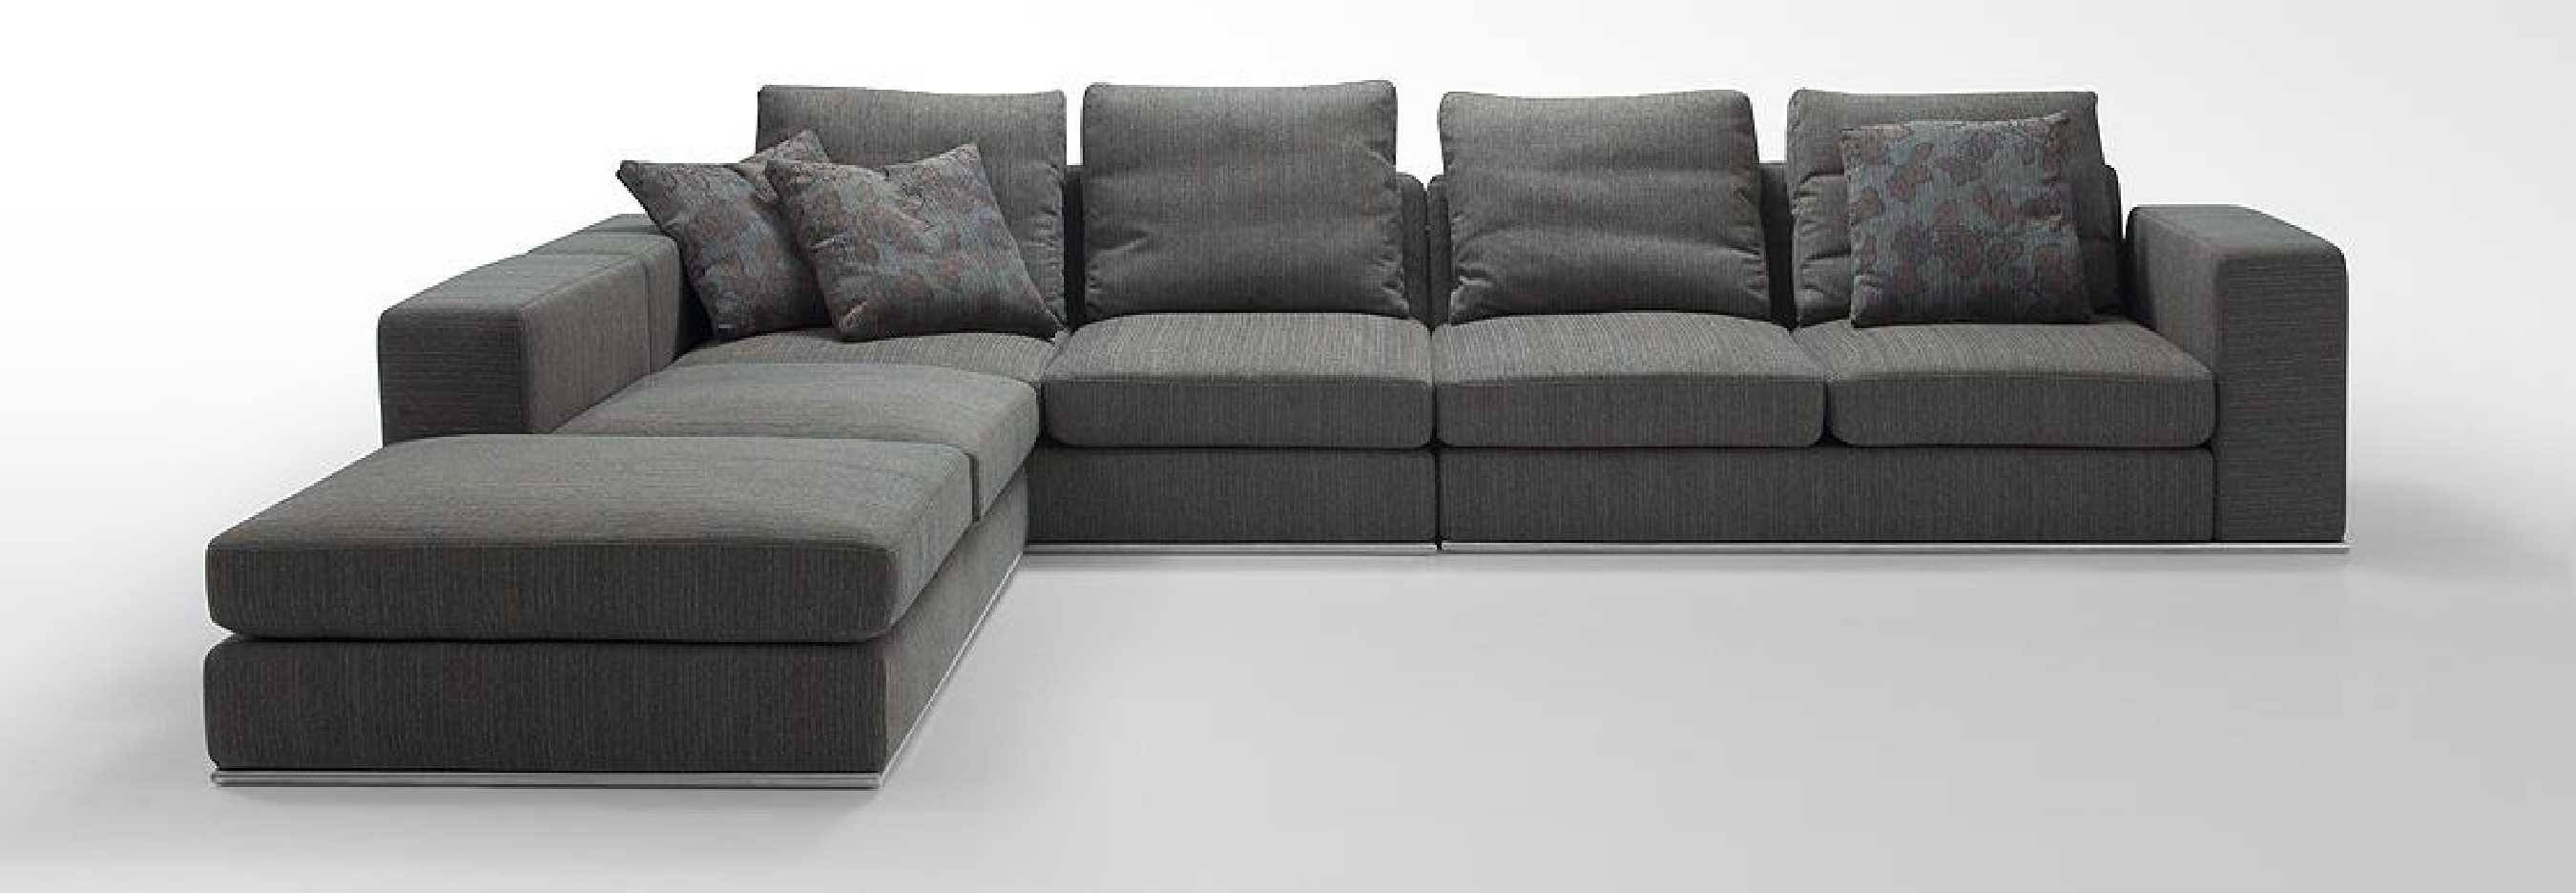 Wonderful Couch L Shape 113 Small L Shaped Sleeper Sofa Best Grey inside L Shaped Sectional Sleeper Sofa (Image 25 of 25)